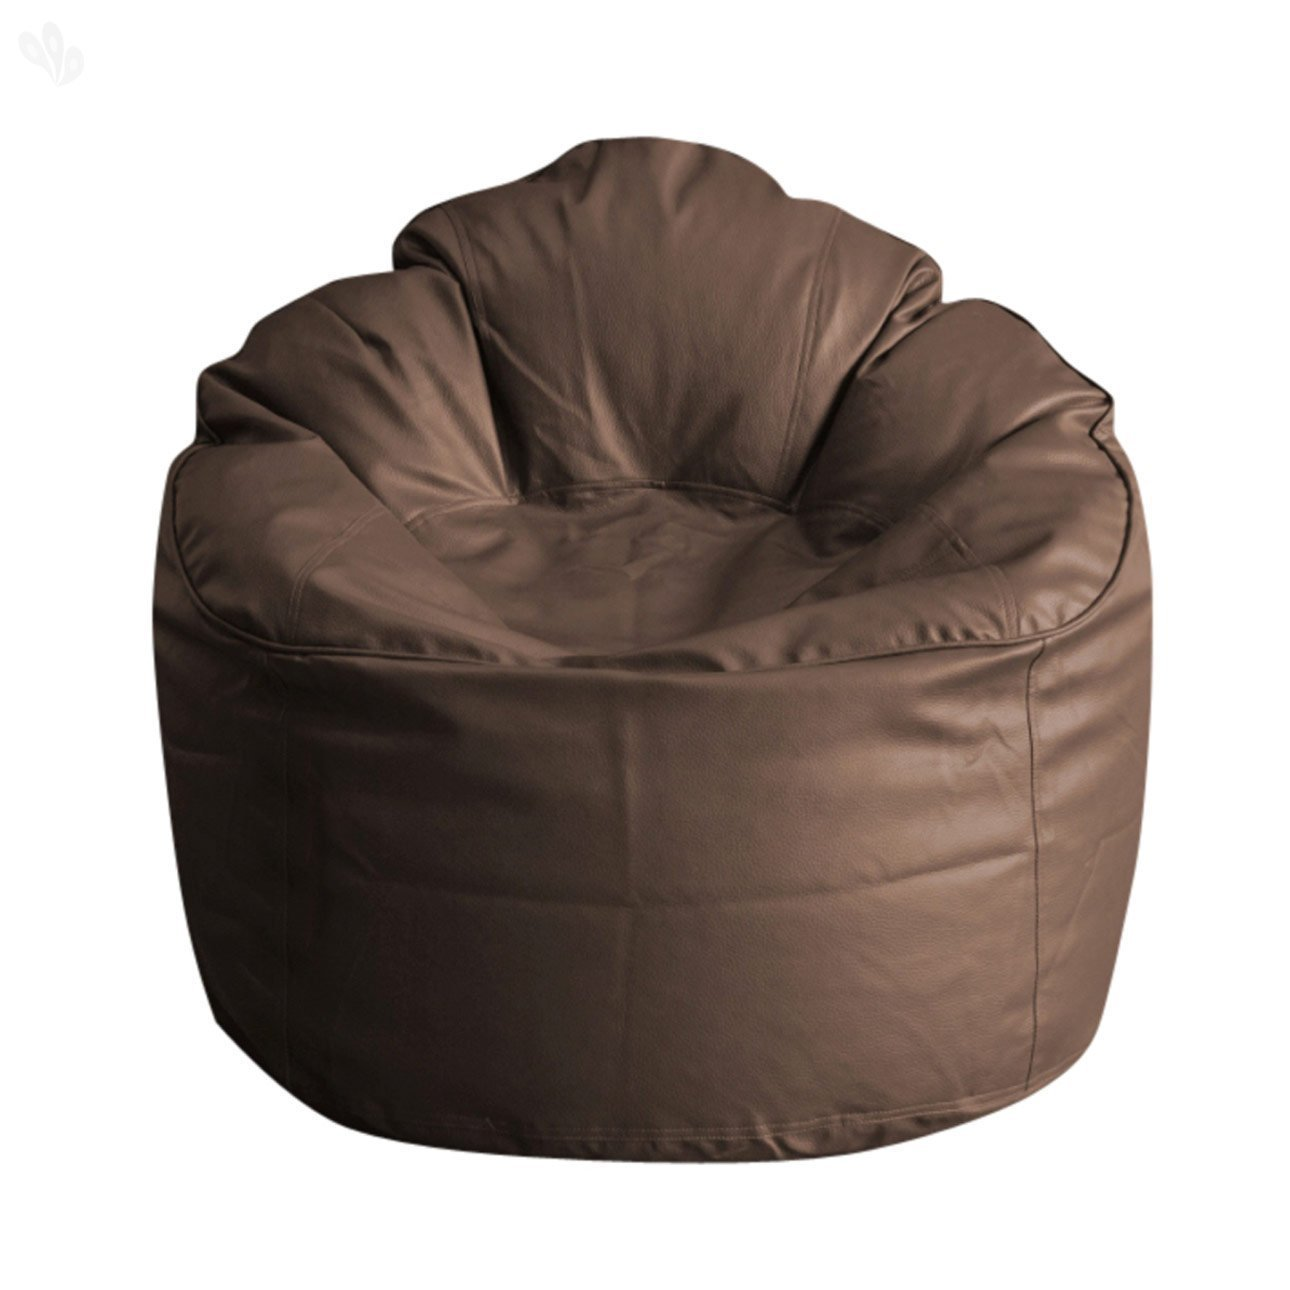 Comfort Bean Bags XXXL Bag Cover Brown Amazonin Electronics